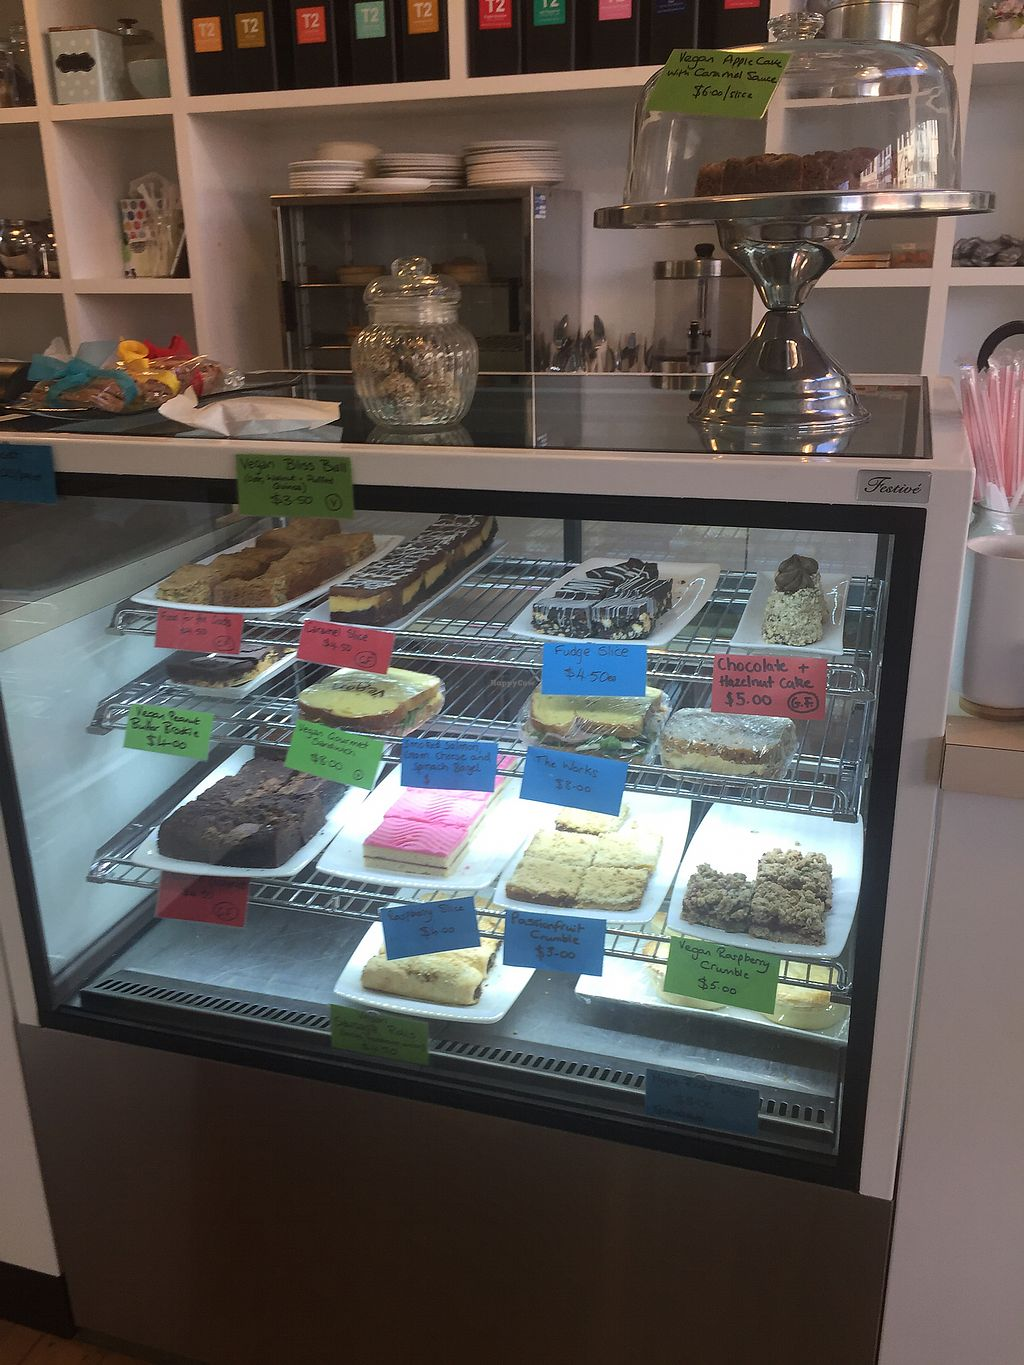 """Photo of Penelopes Cakery Deli  by <a href=""""/members/profile/nicole_m"""">nicole_m</a> <br/>Cabinet options <br/> August 1, 2017  - <a href='/contact/abuse/image/95170/287472'>Report</a>"""